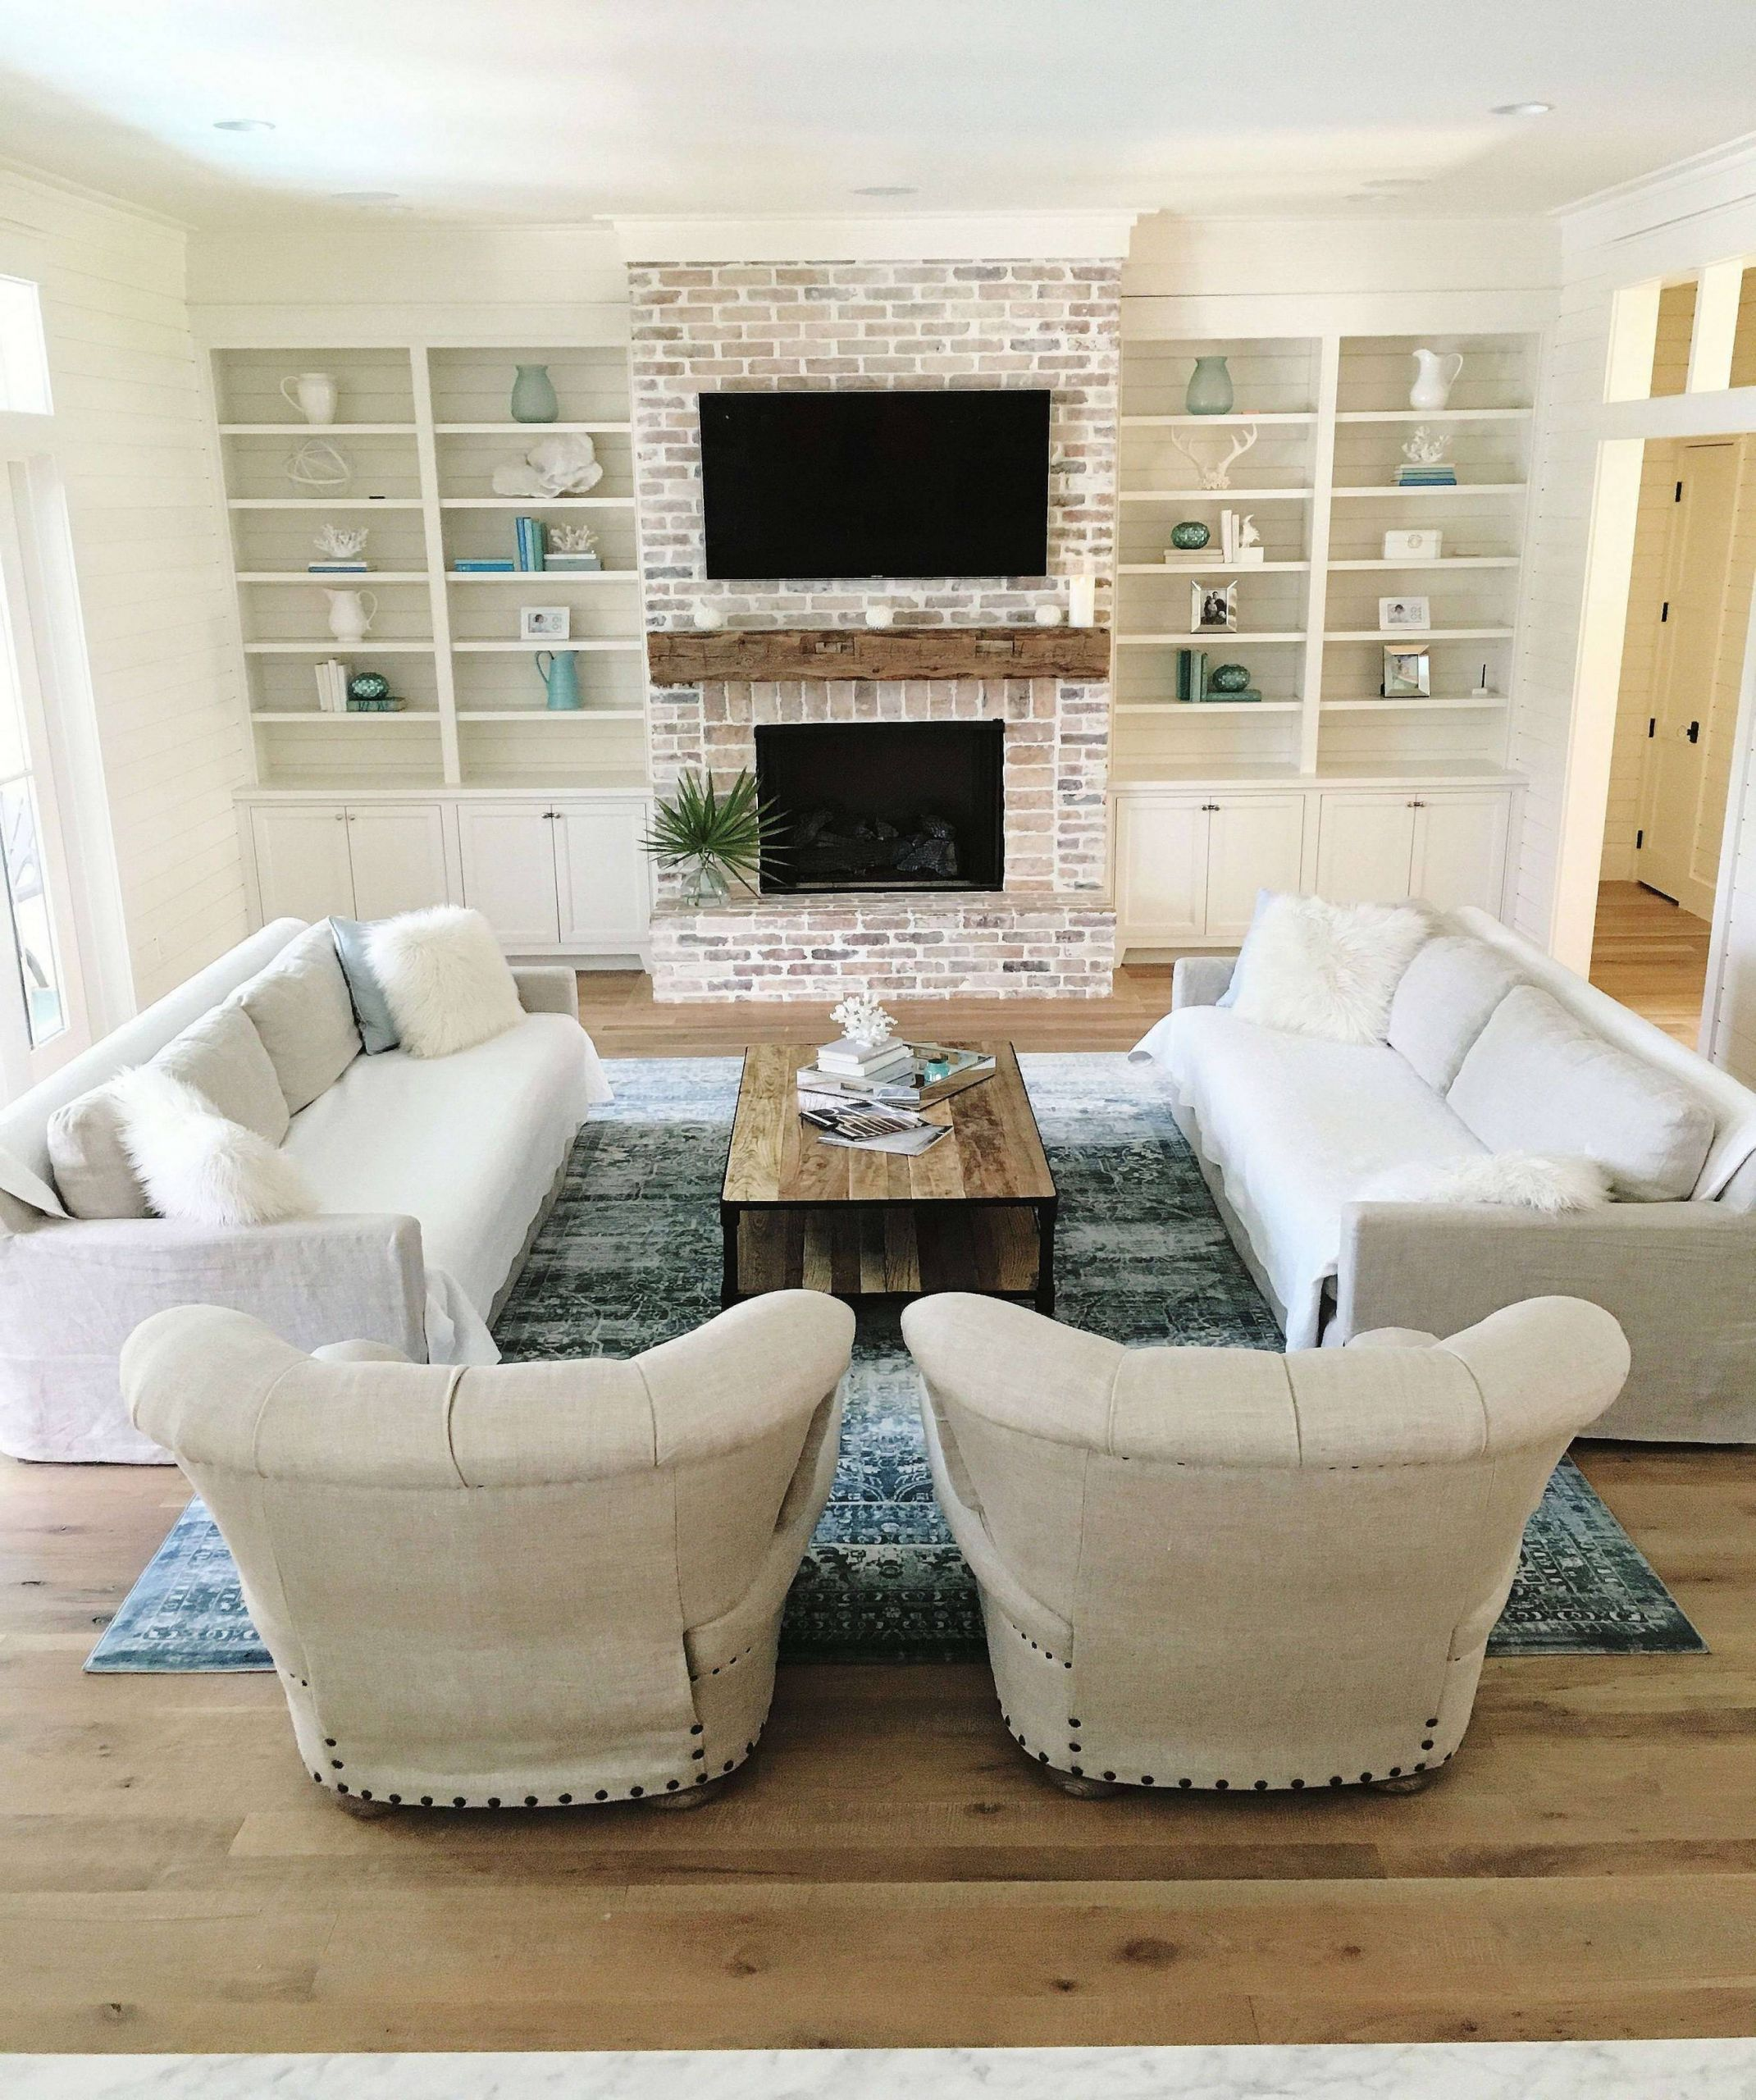 wall picture ideas best mirror wall decoration ideas living room of wall picture ideas